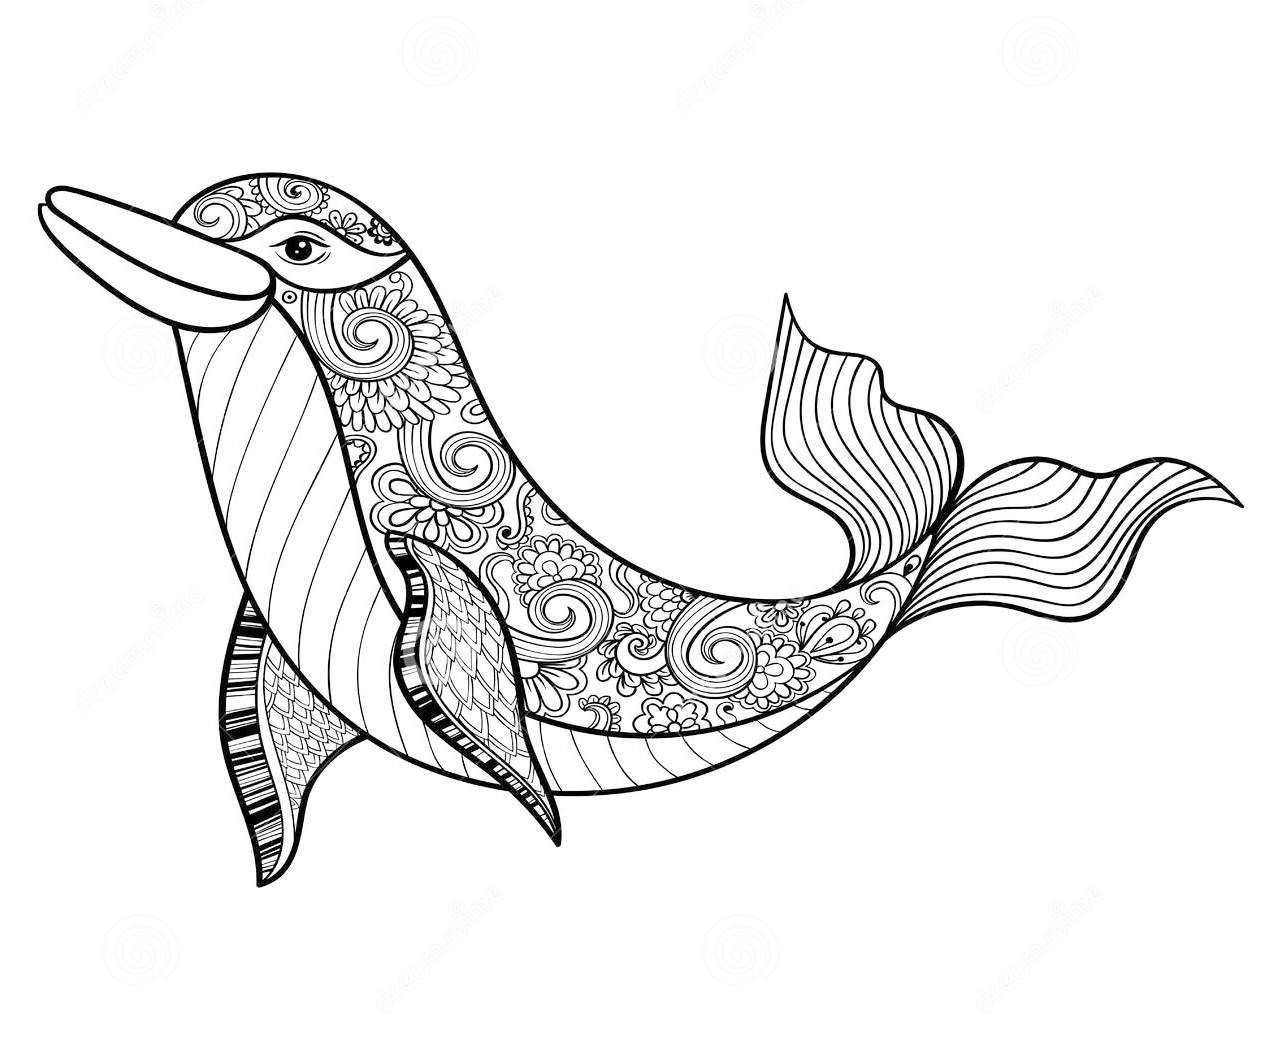 Zentangle Dolphin Coloring Page To Relieve Stress